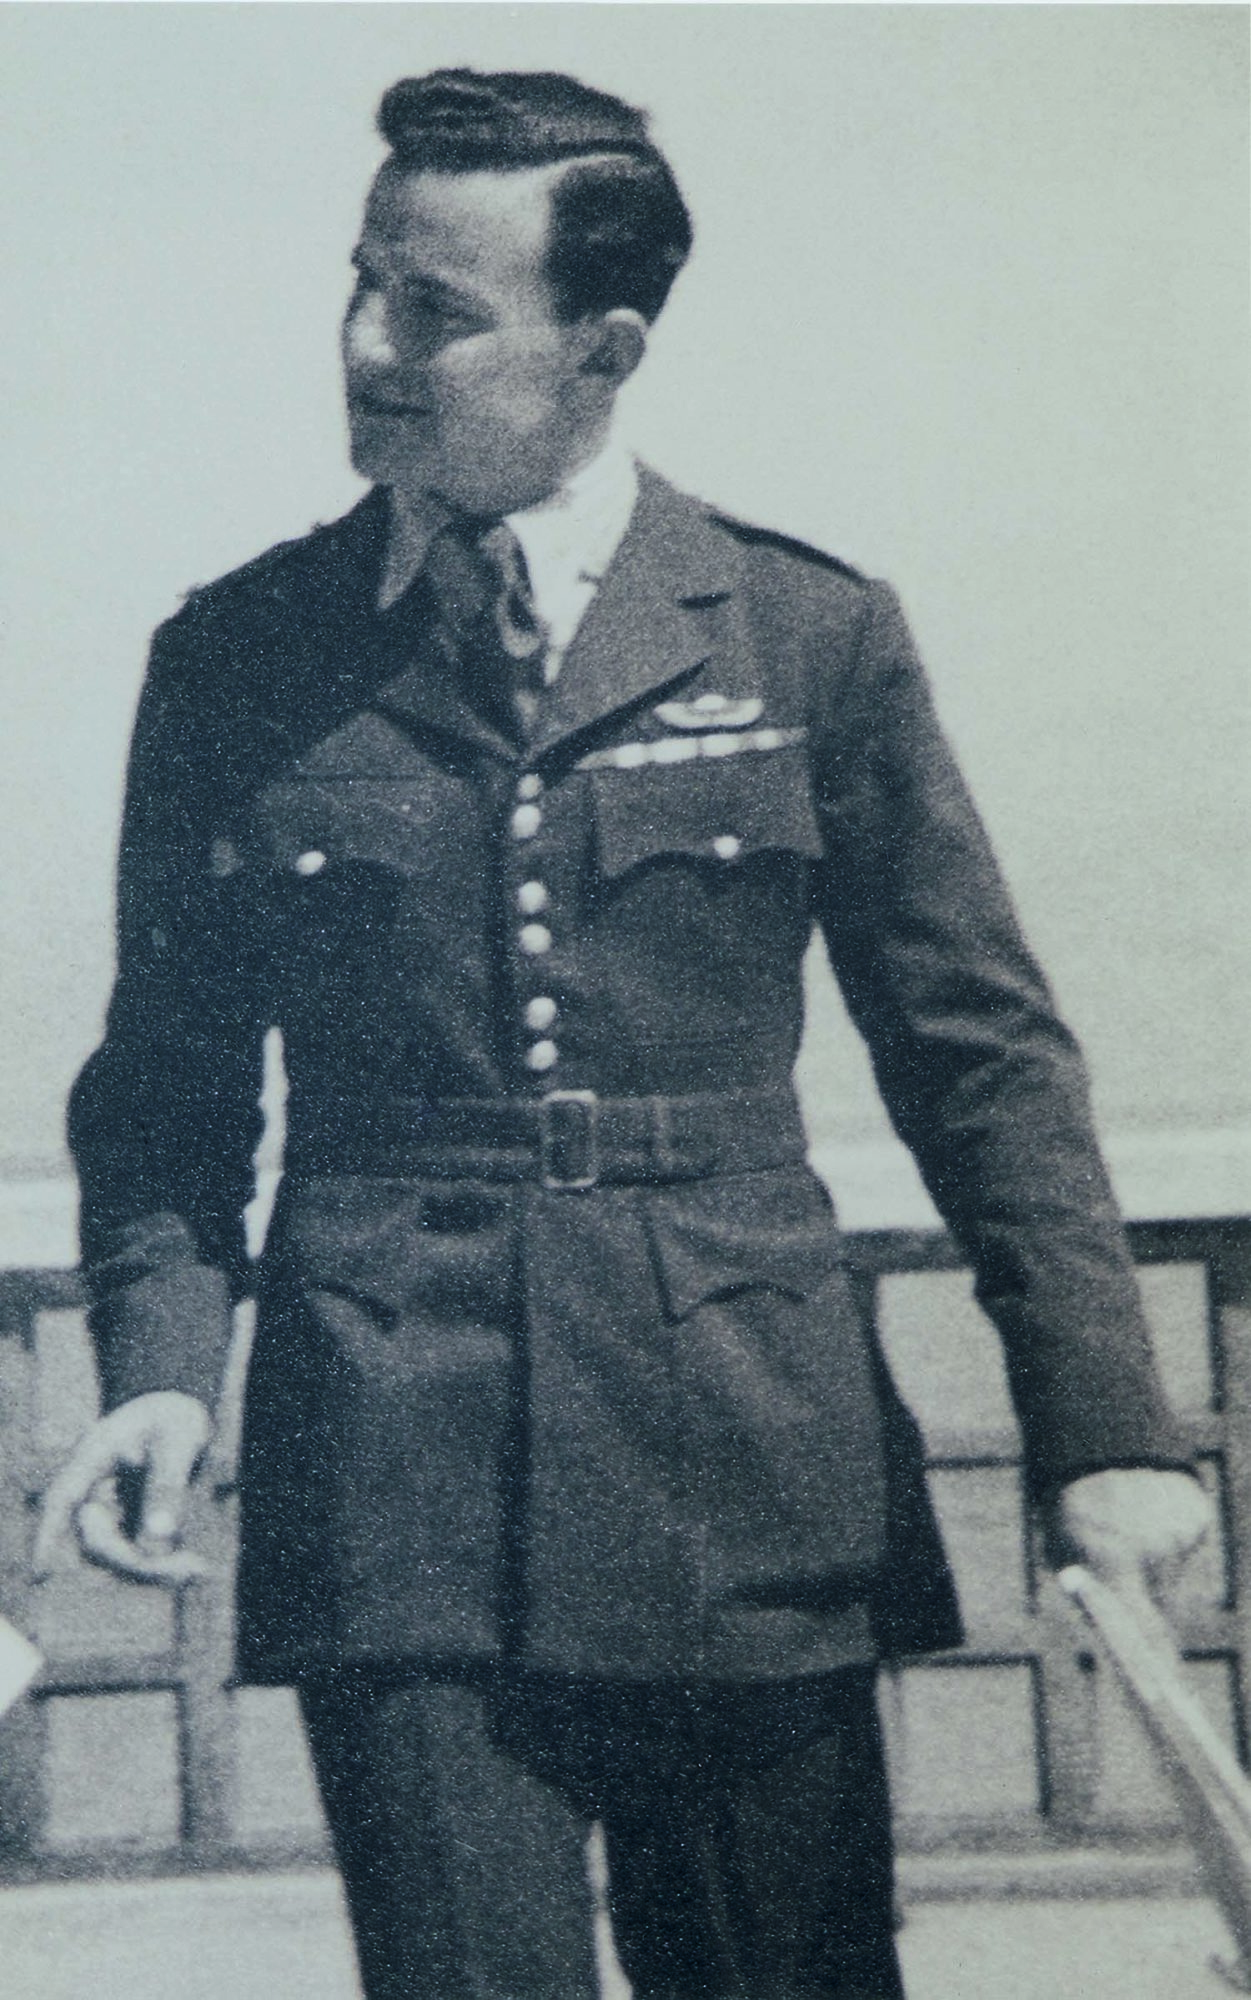 Black and white photograph of George Jellicoe, 2nd Earl Jellicoe